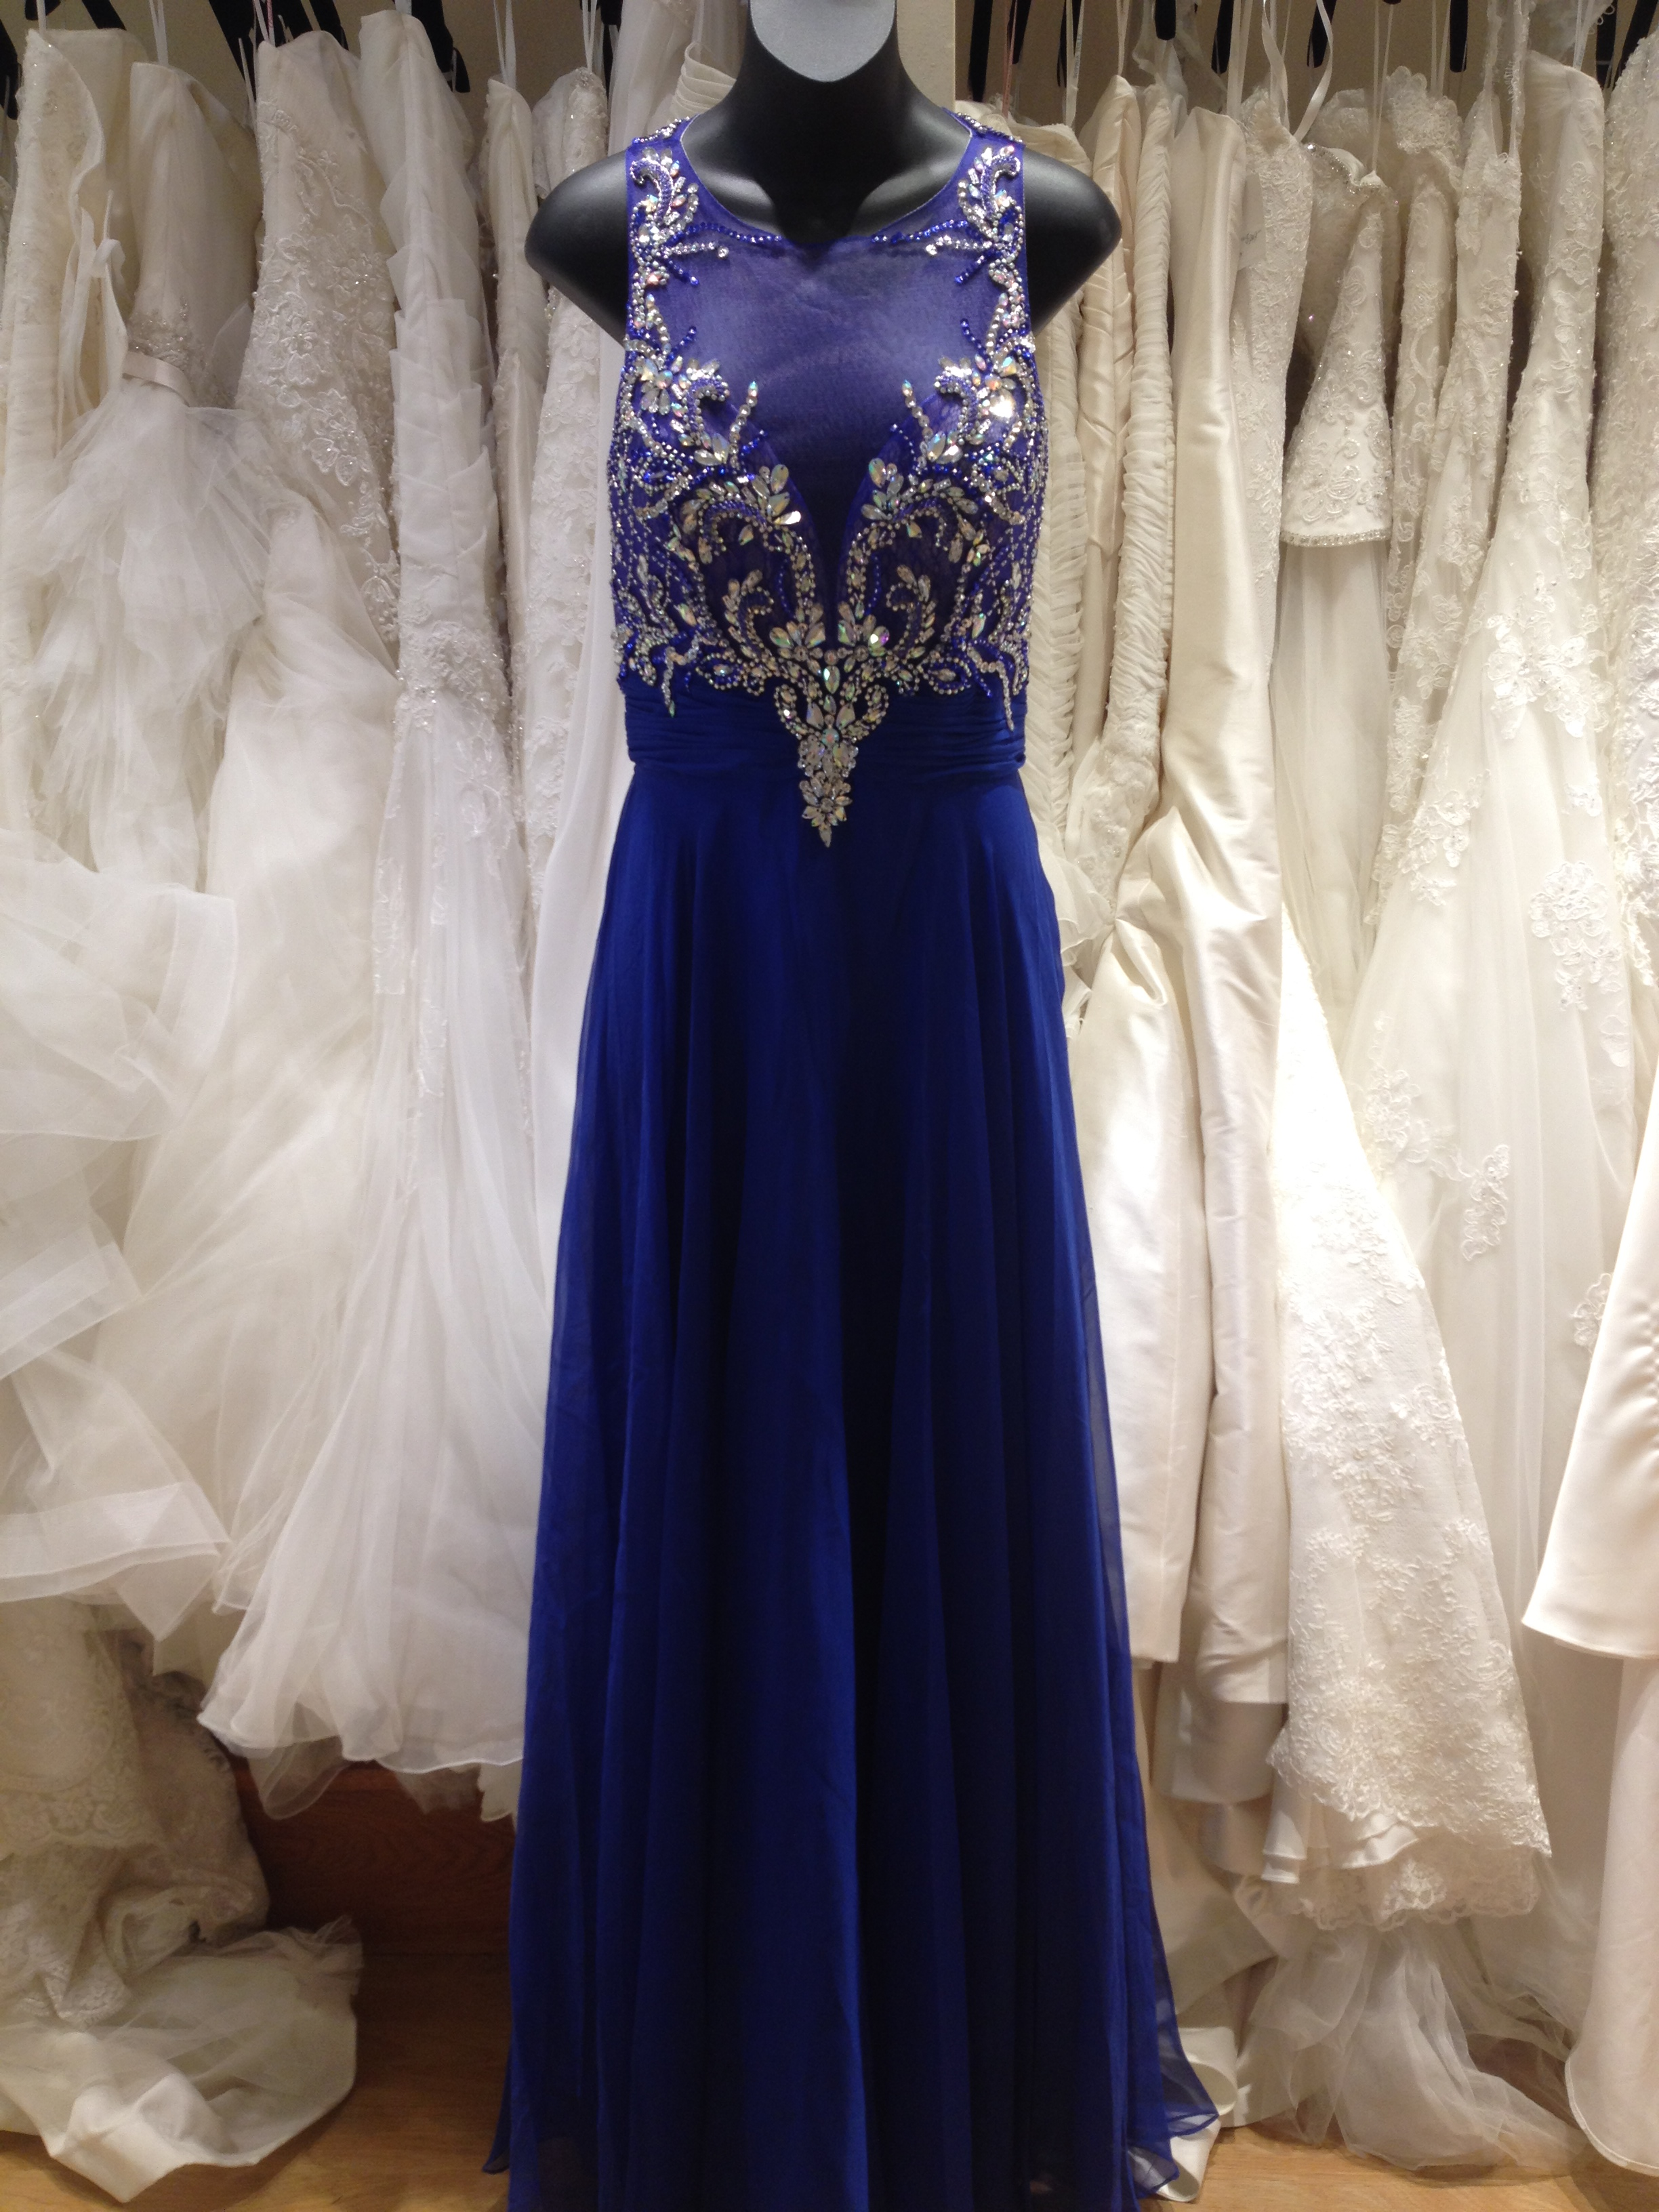 Prom Dress Rental Stores